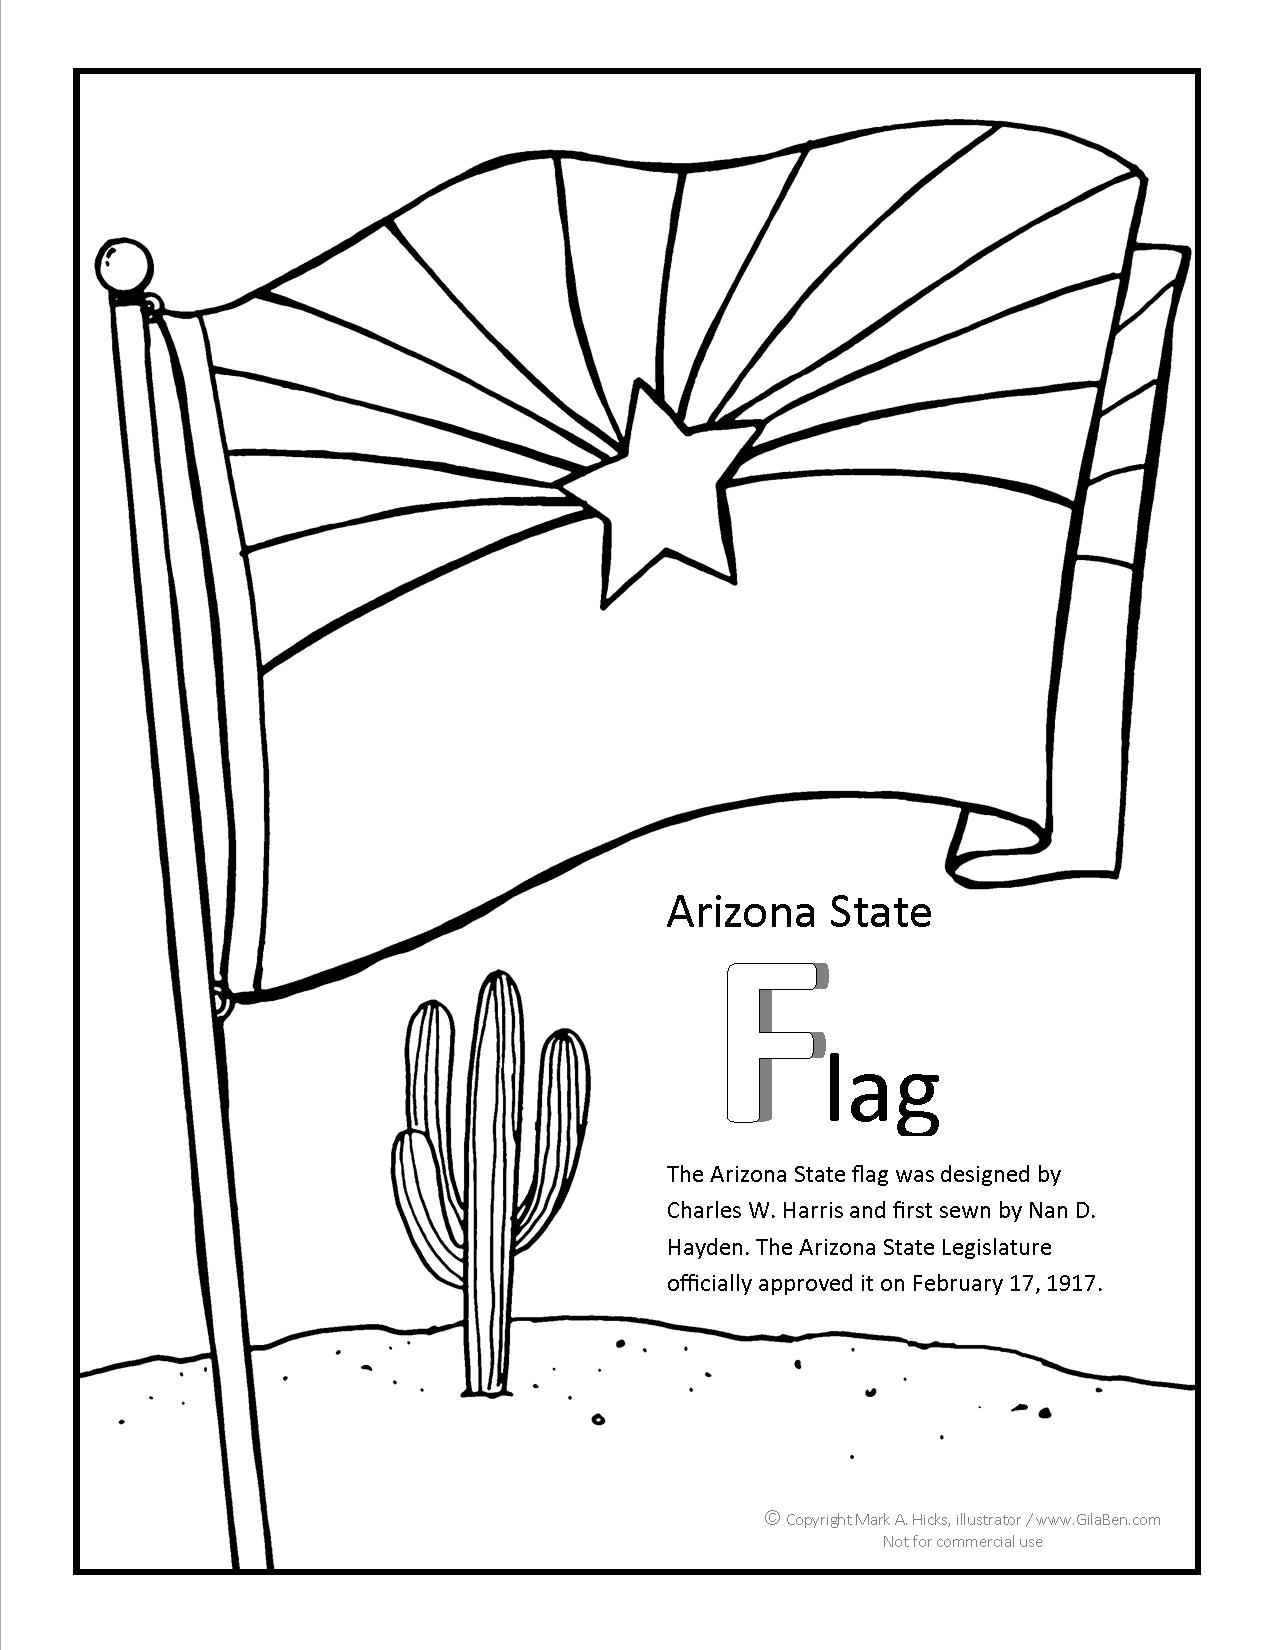 Arizona State Flag Coloring Sheet | Coloring Pages